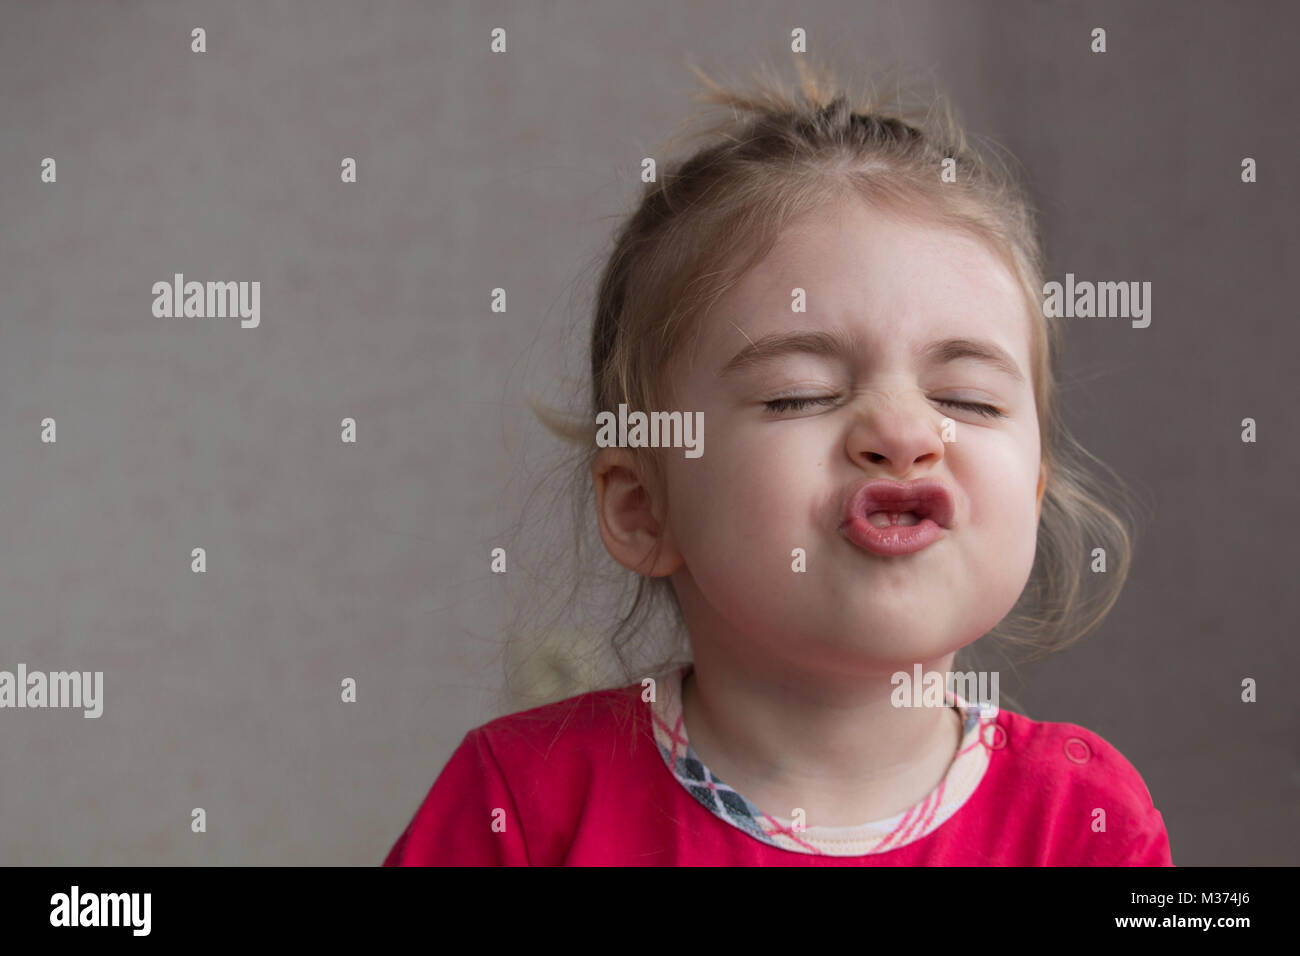 Clouse-up portrait of cheerful little girl gesturing and making funny grimace at camera. Have you smiled today - Stock Image